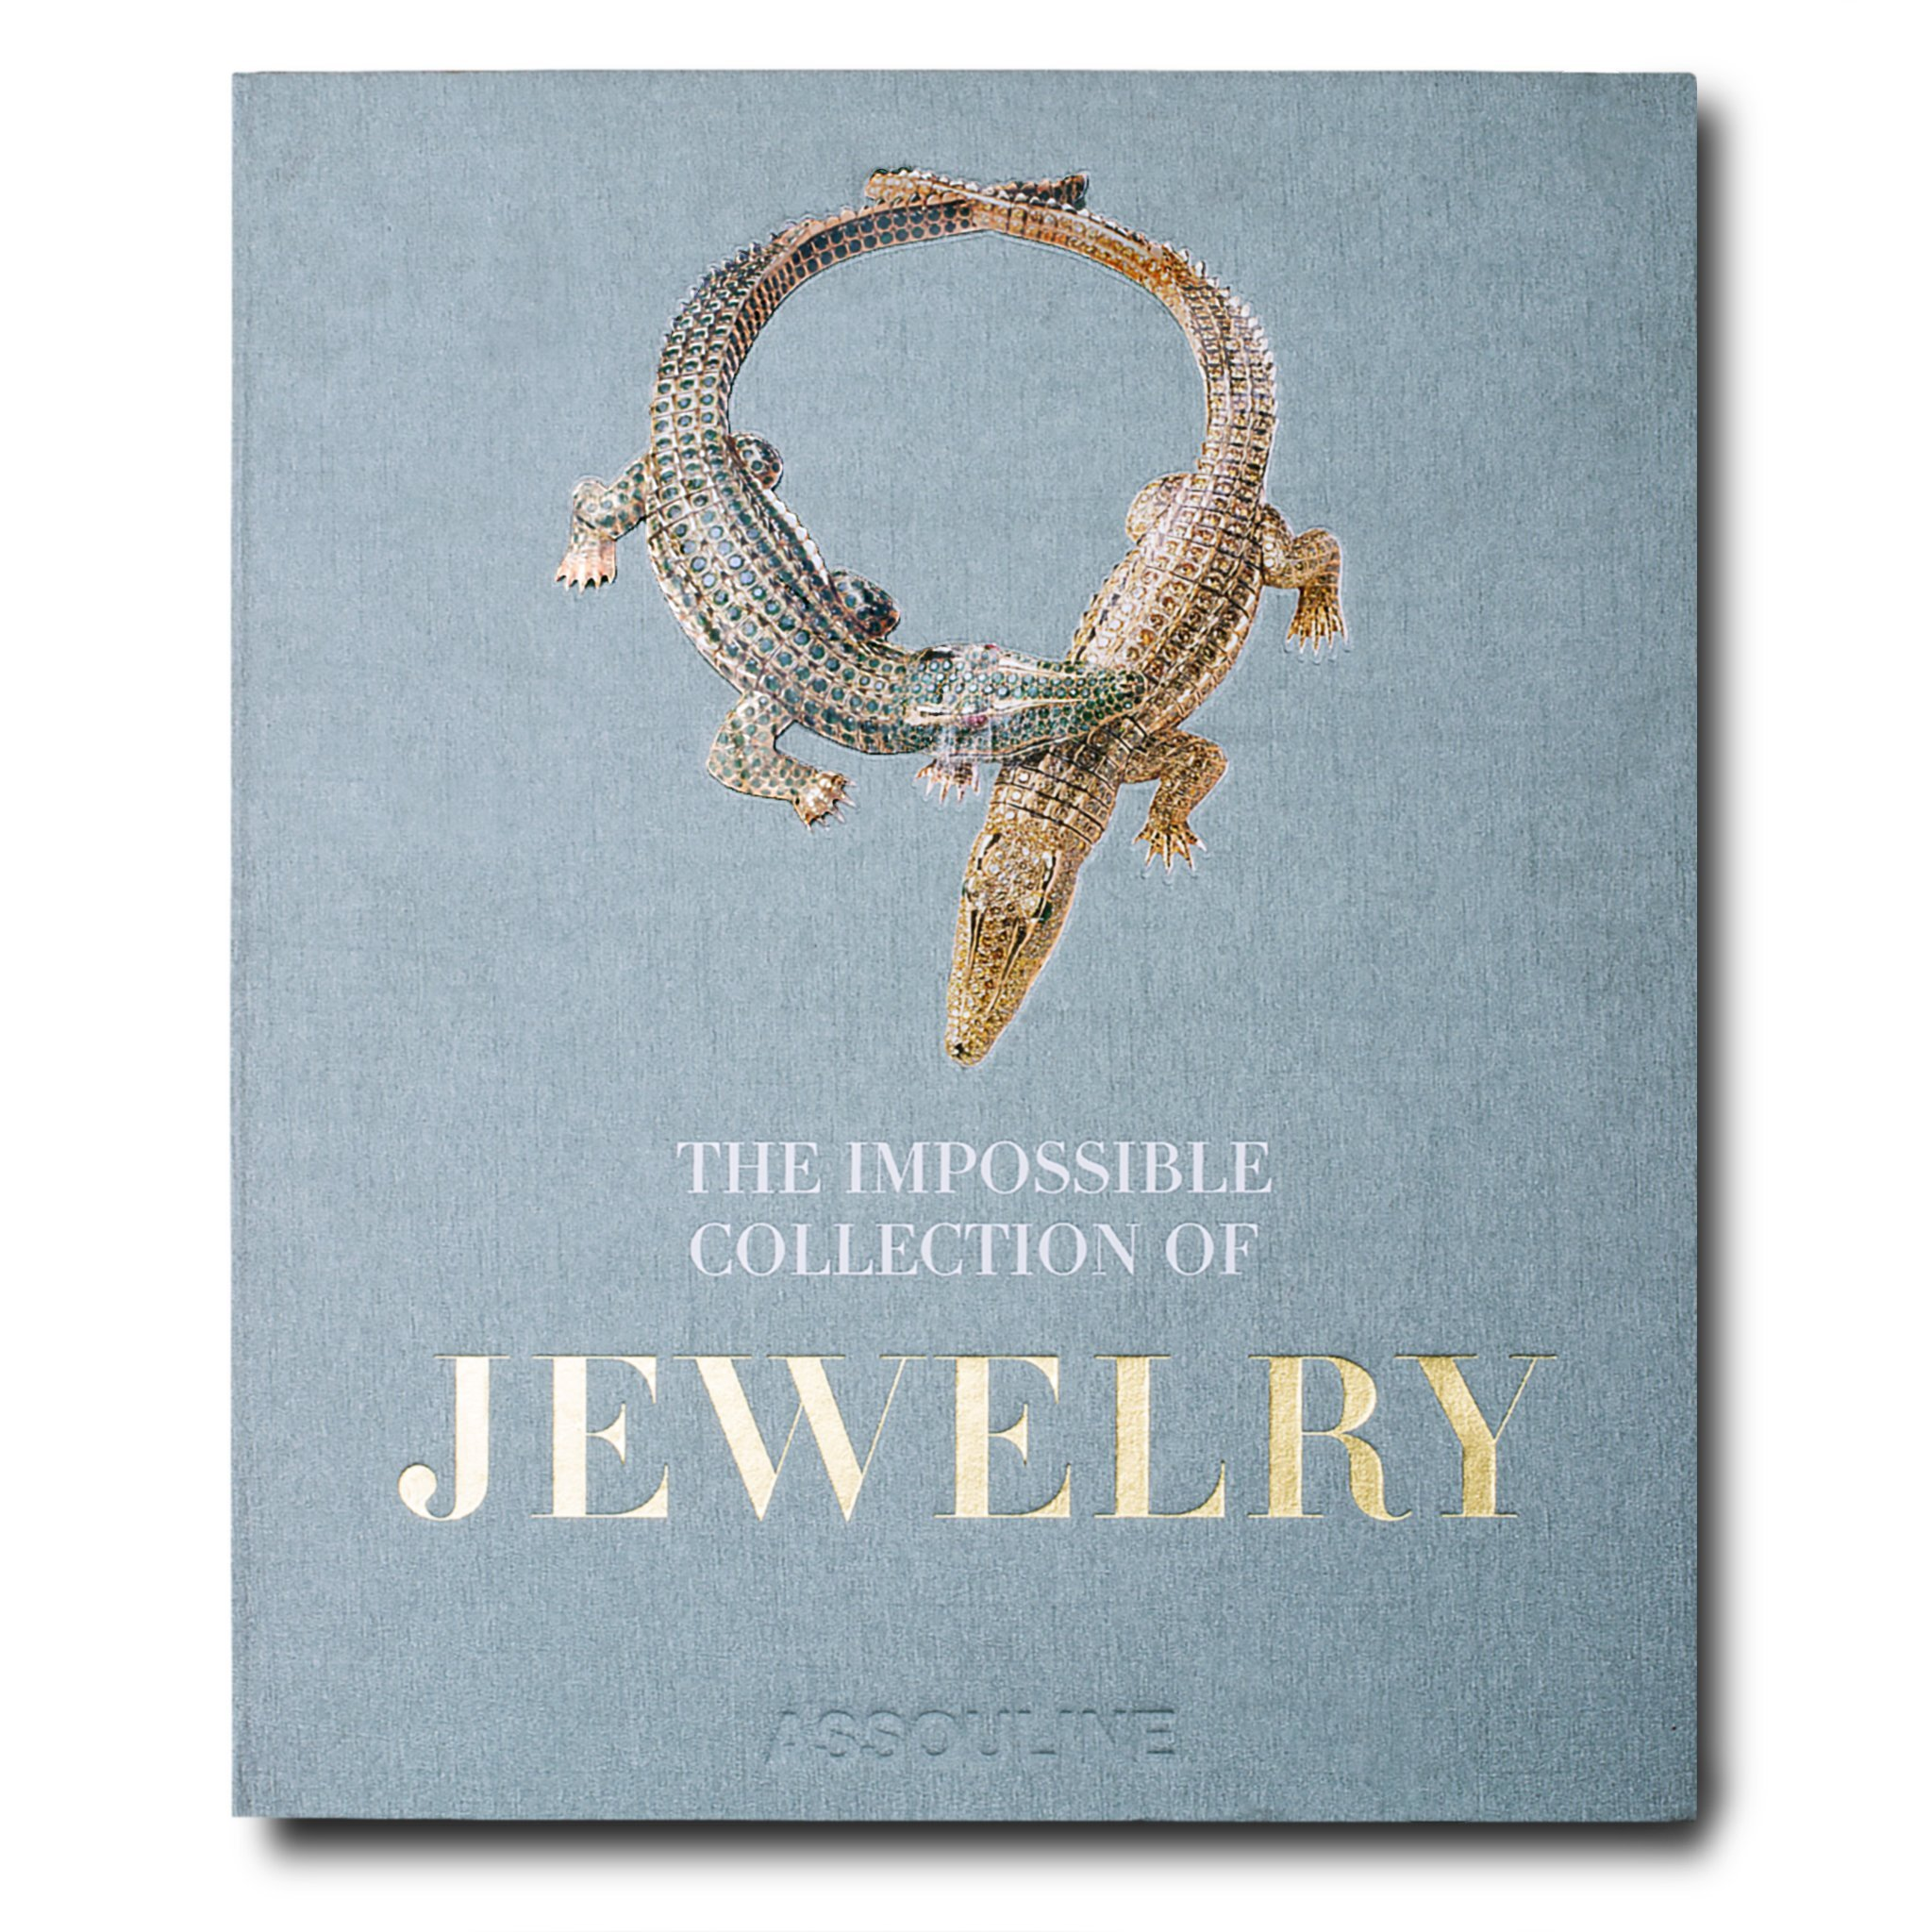 IMPOSSIBLE COLLECTION OF READING: The Impossible Collection of Jewelry by Vivienne Becker - EAT LOVE SAVOR International luxury lifestyle magazine and bookazines